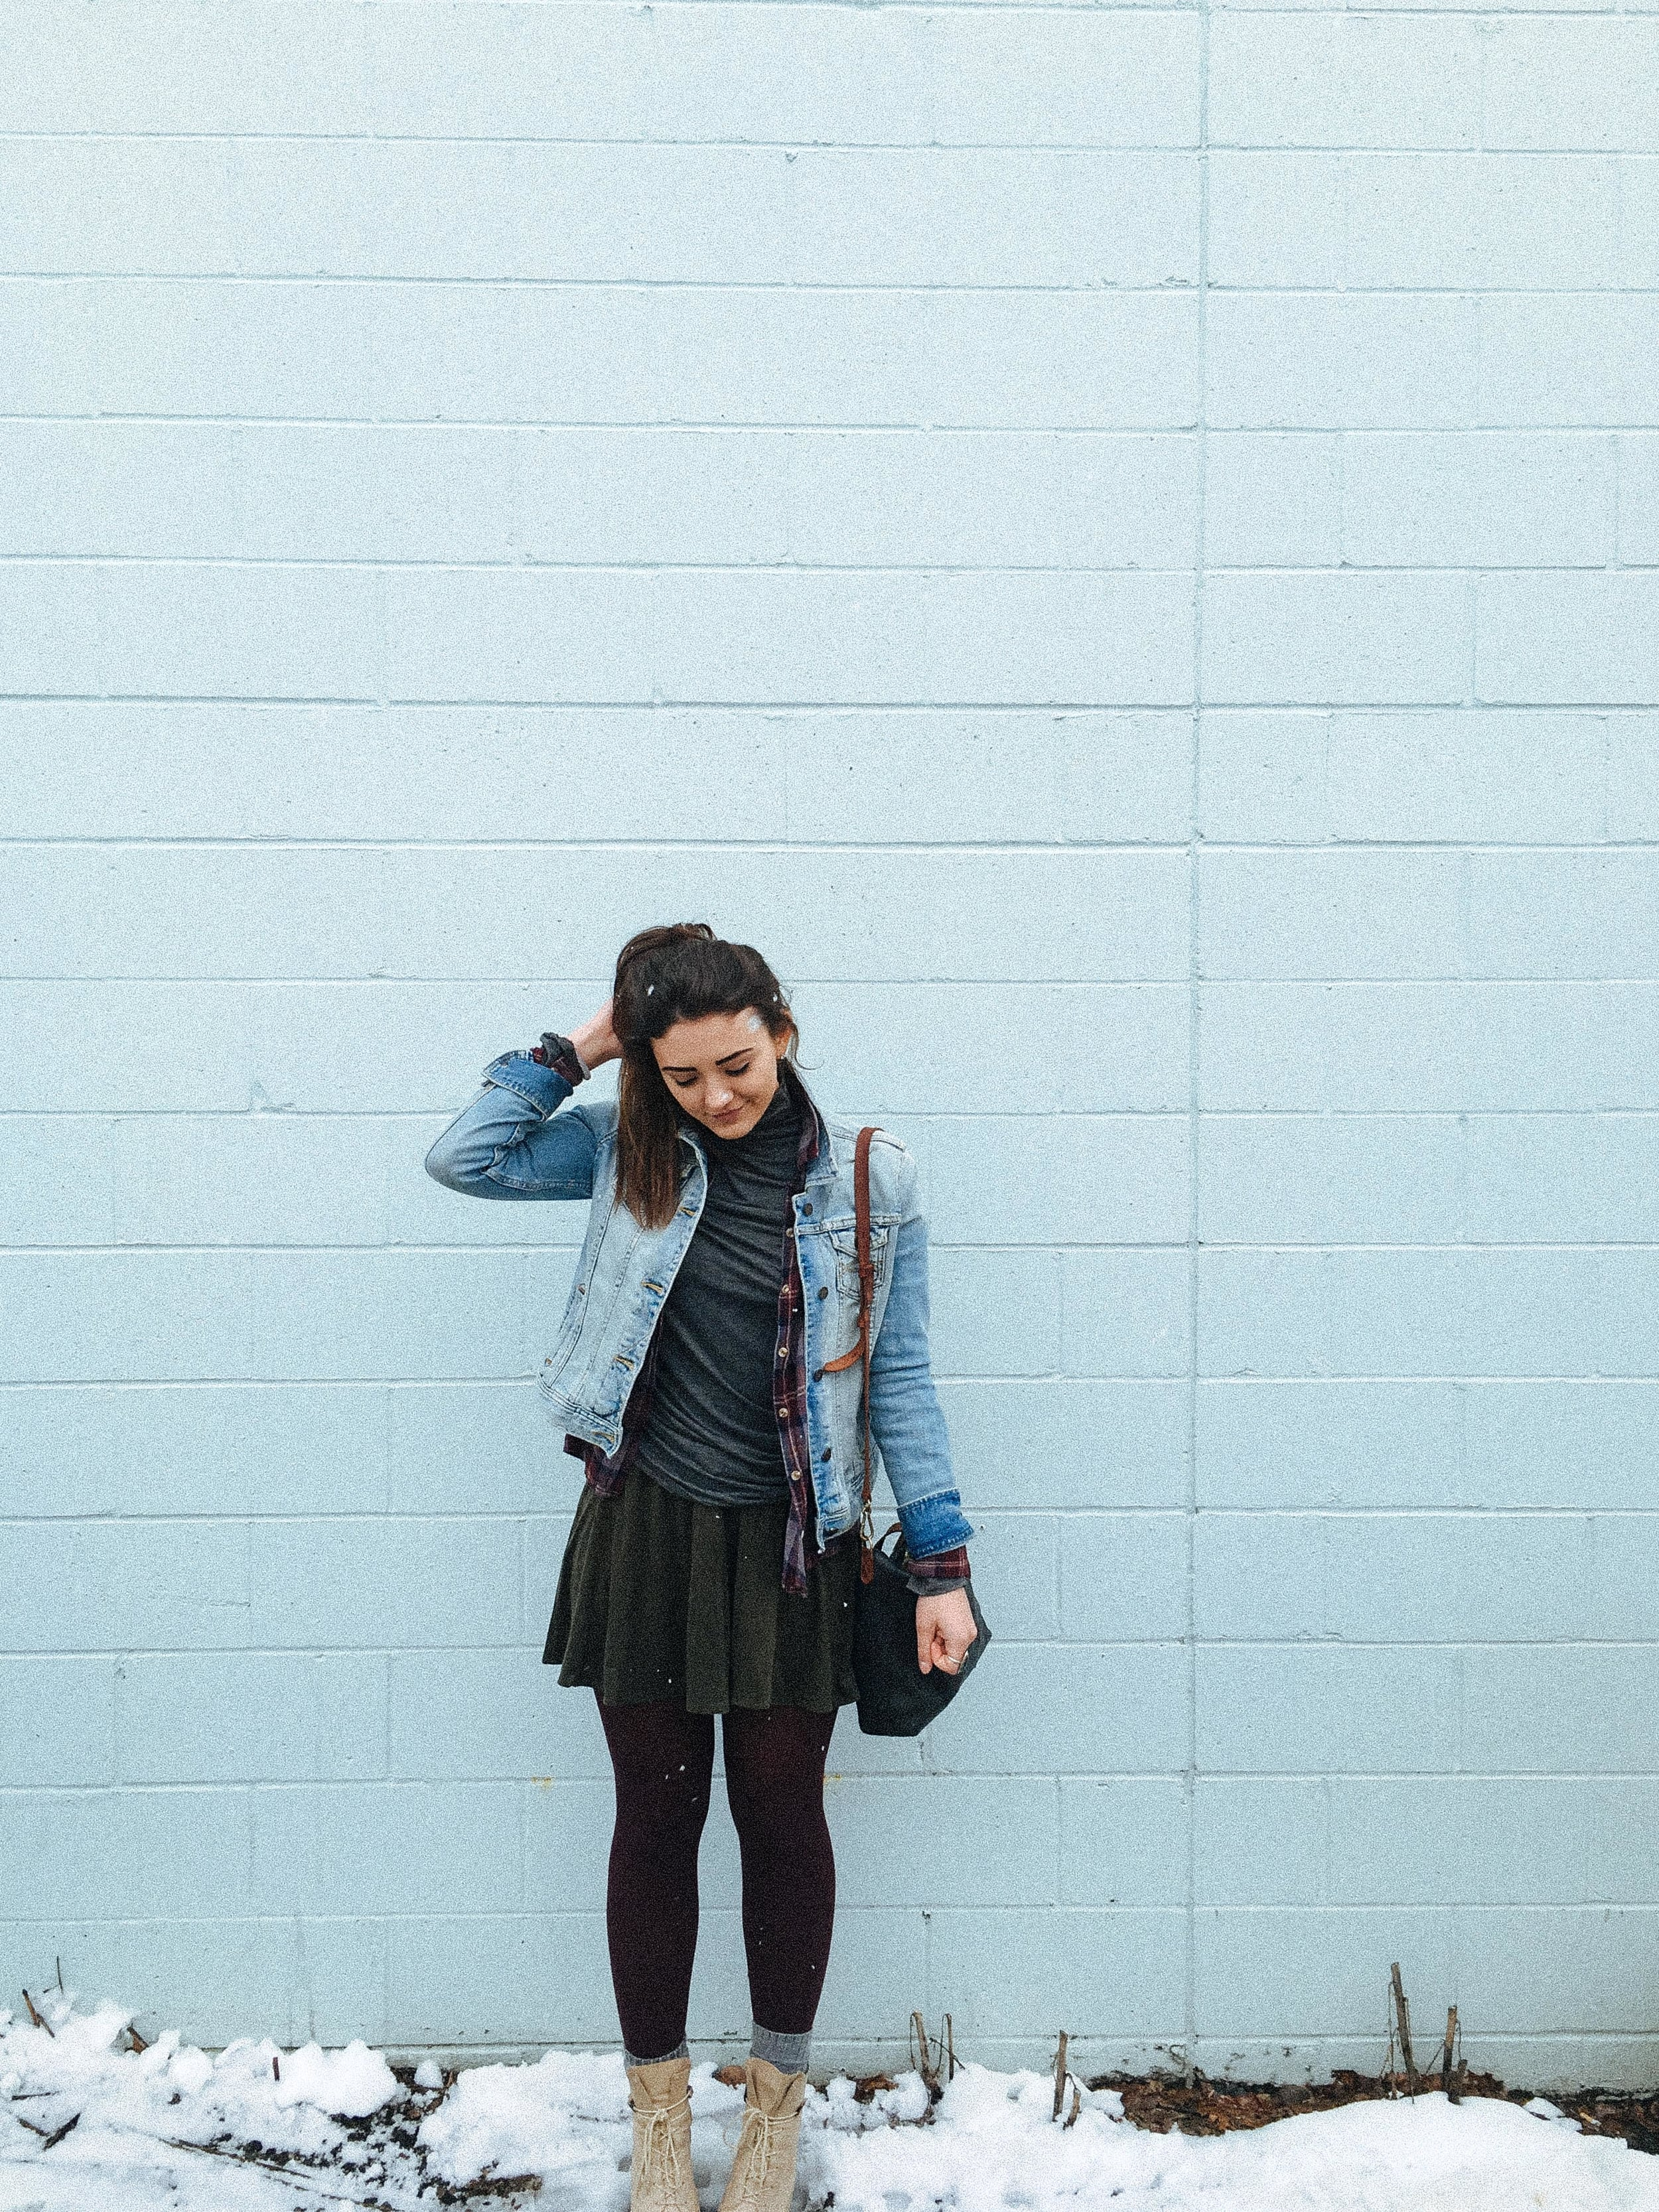 Brandy Melville  Jean Jacket  (similar)   |   Brandy Melville  Flannel  | La Seniorita Jolie Turtleneck | Brandy Melville  Skirt  (similar) | Bullboxer  Boots  | Madewell  Mini Transport Crossbody